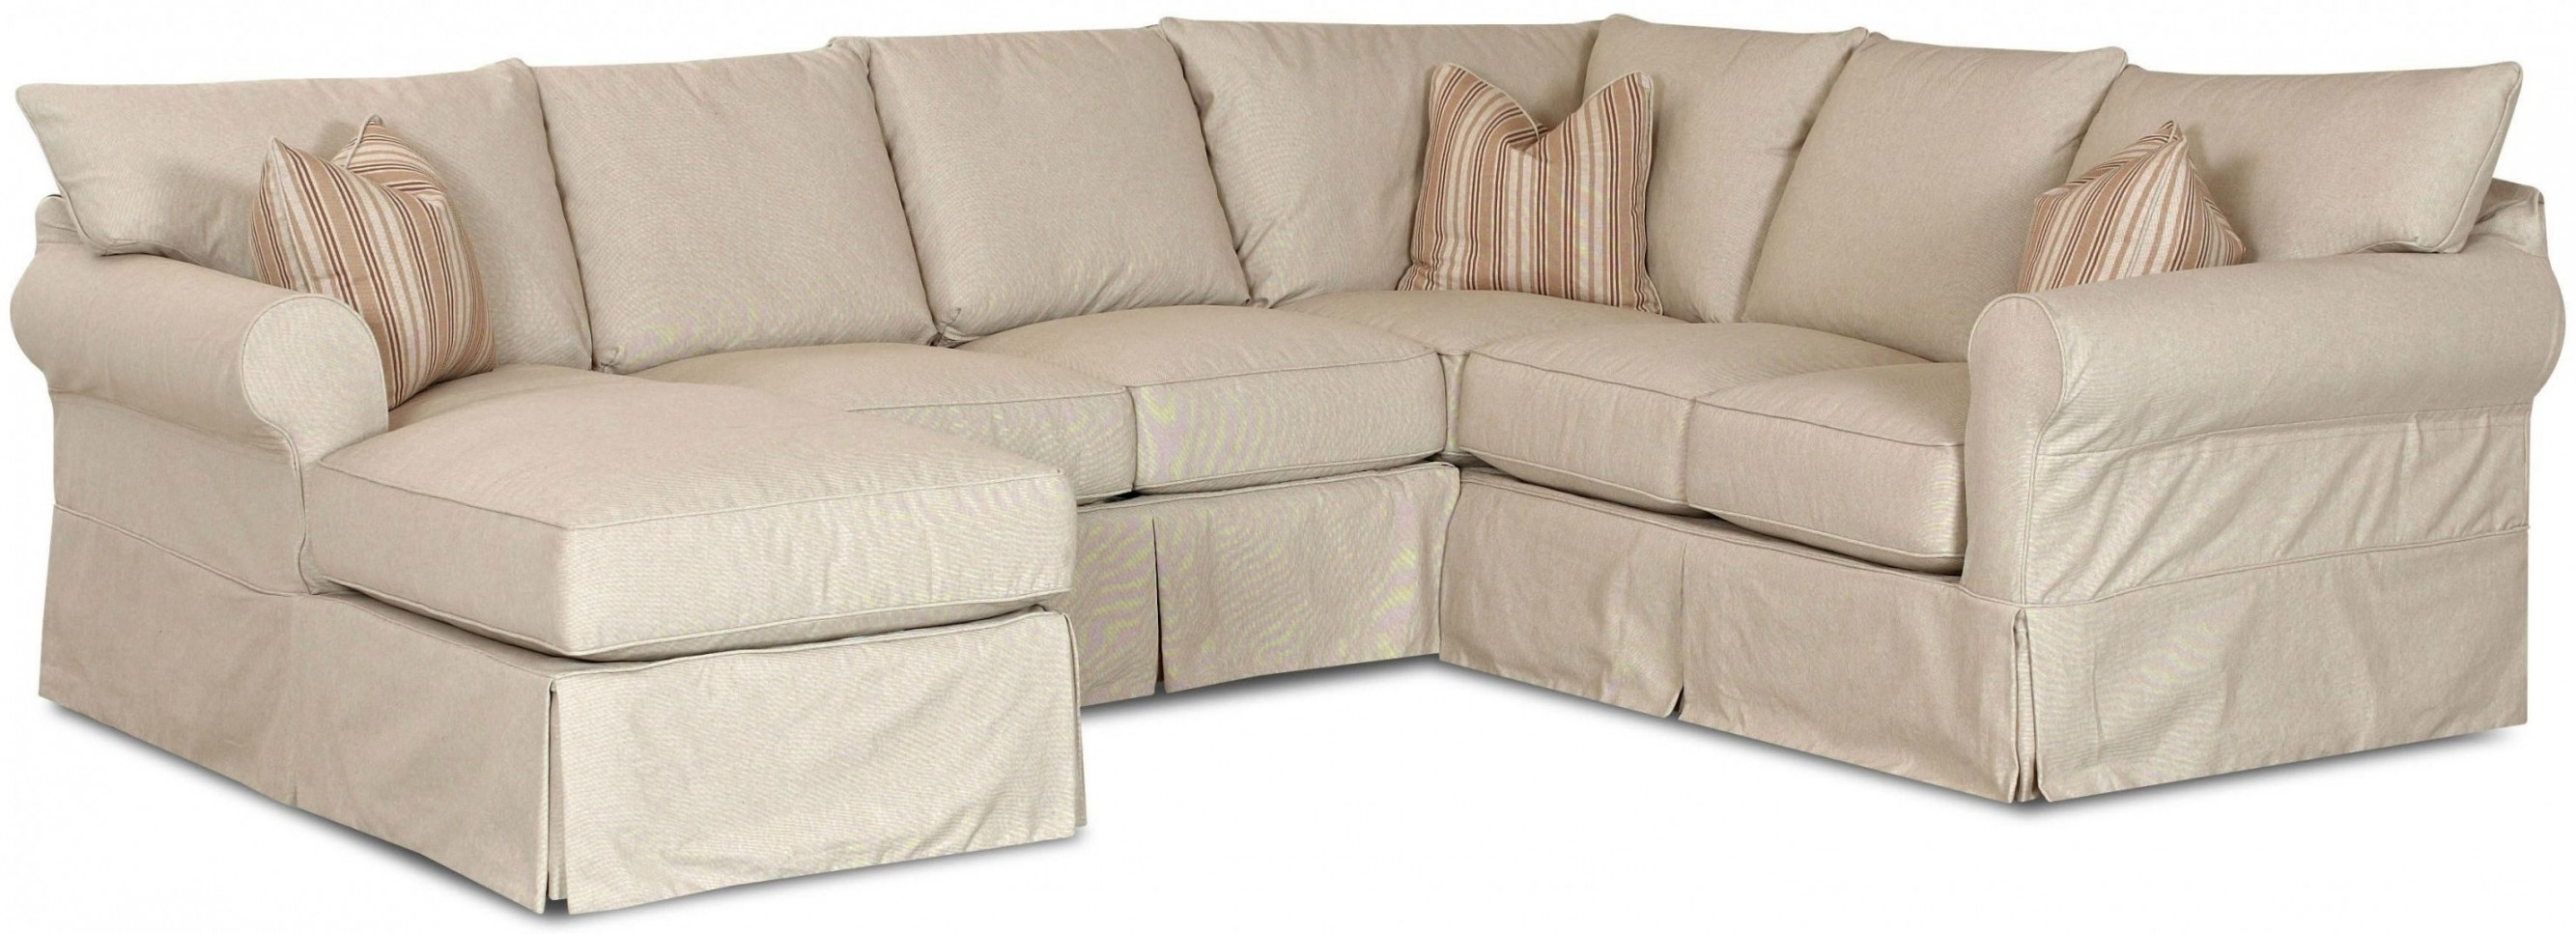 Chaise Lounge Sectional Sofa Covers | Home Design And Decorating Ideas For Sectional Sofas With Covers (View 3 of 15)